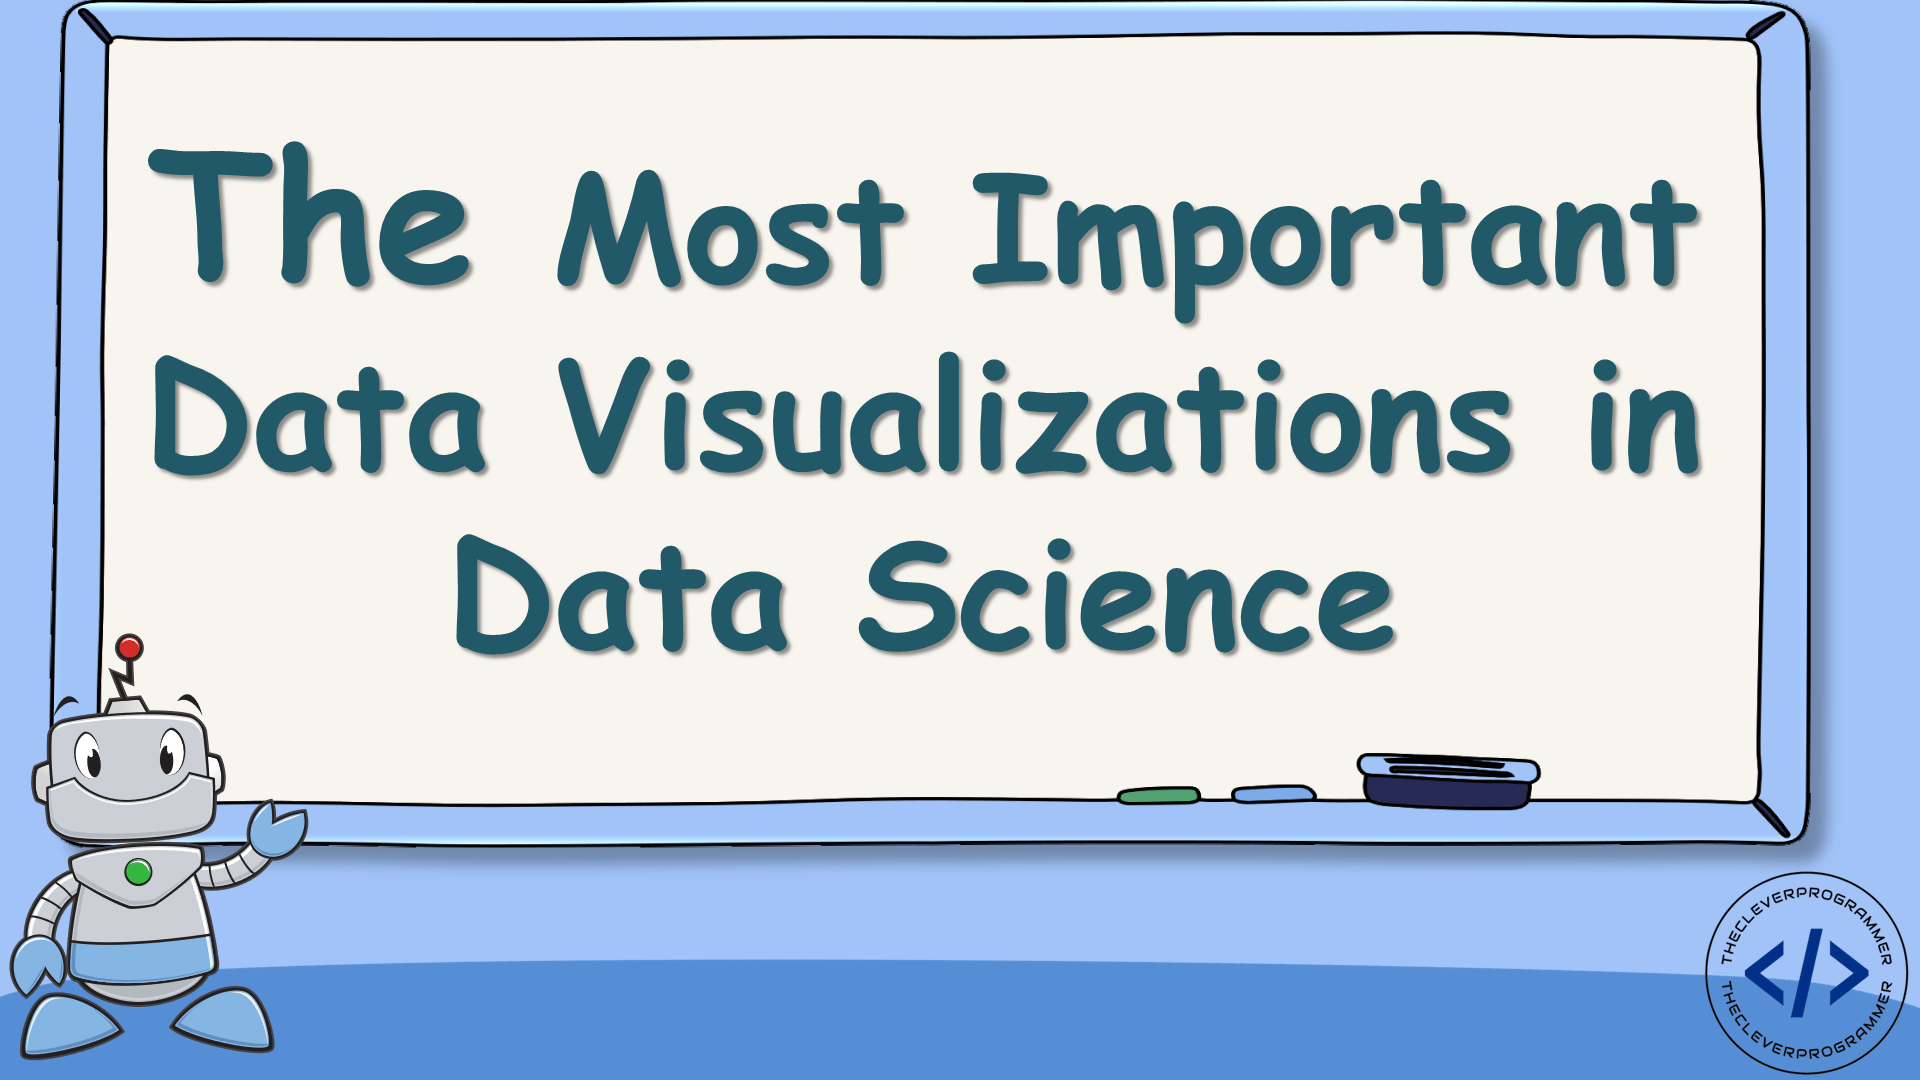 Most Important Data Visualizations in Data Science